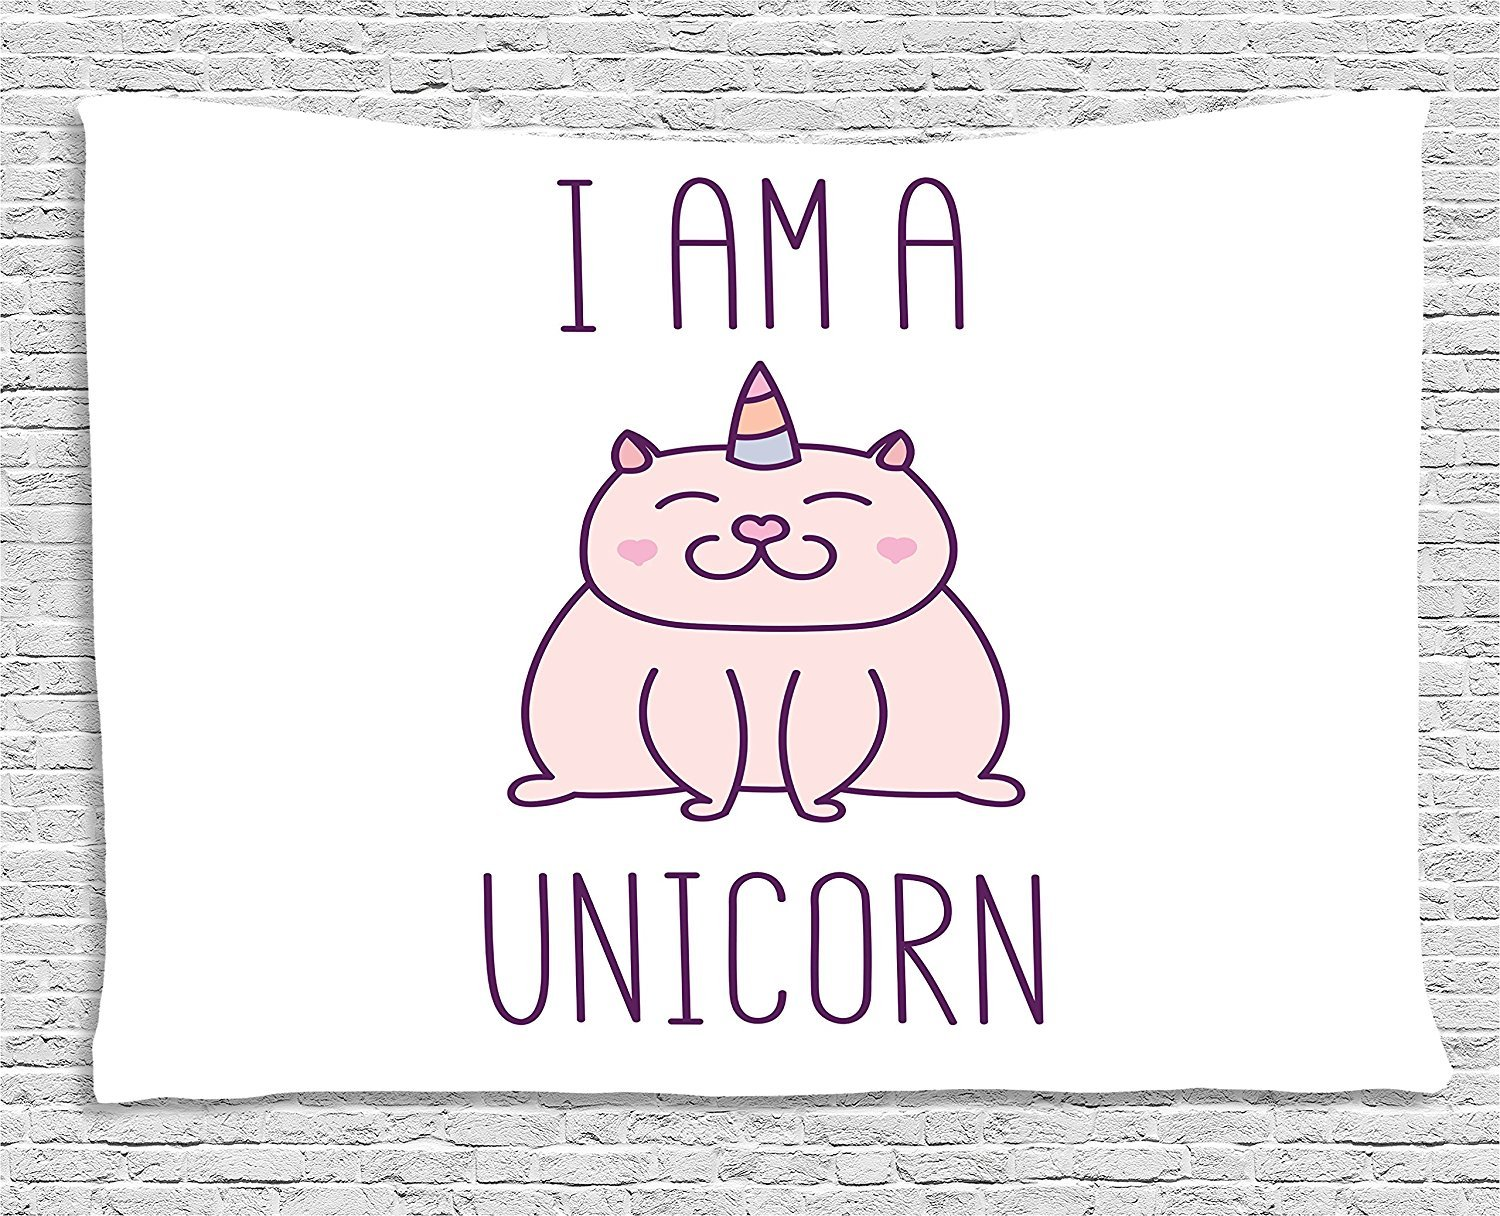 Unicorn Cat Tapestry, Fantasy Animal withI am a Unicorn Quote Lovely Funny Fictive Kitten, Wall Hanging for Bedroom Living Room Dorm, 80 W X 60 L Inches, Baby Pink Purple